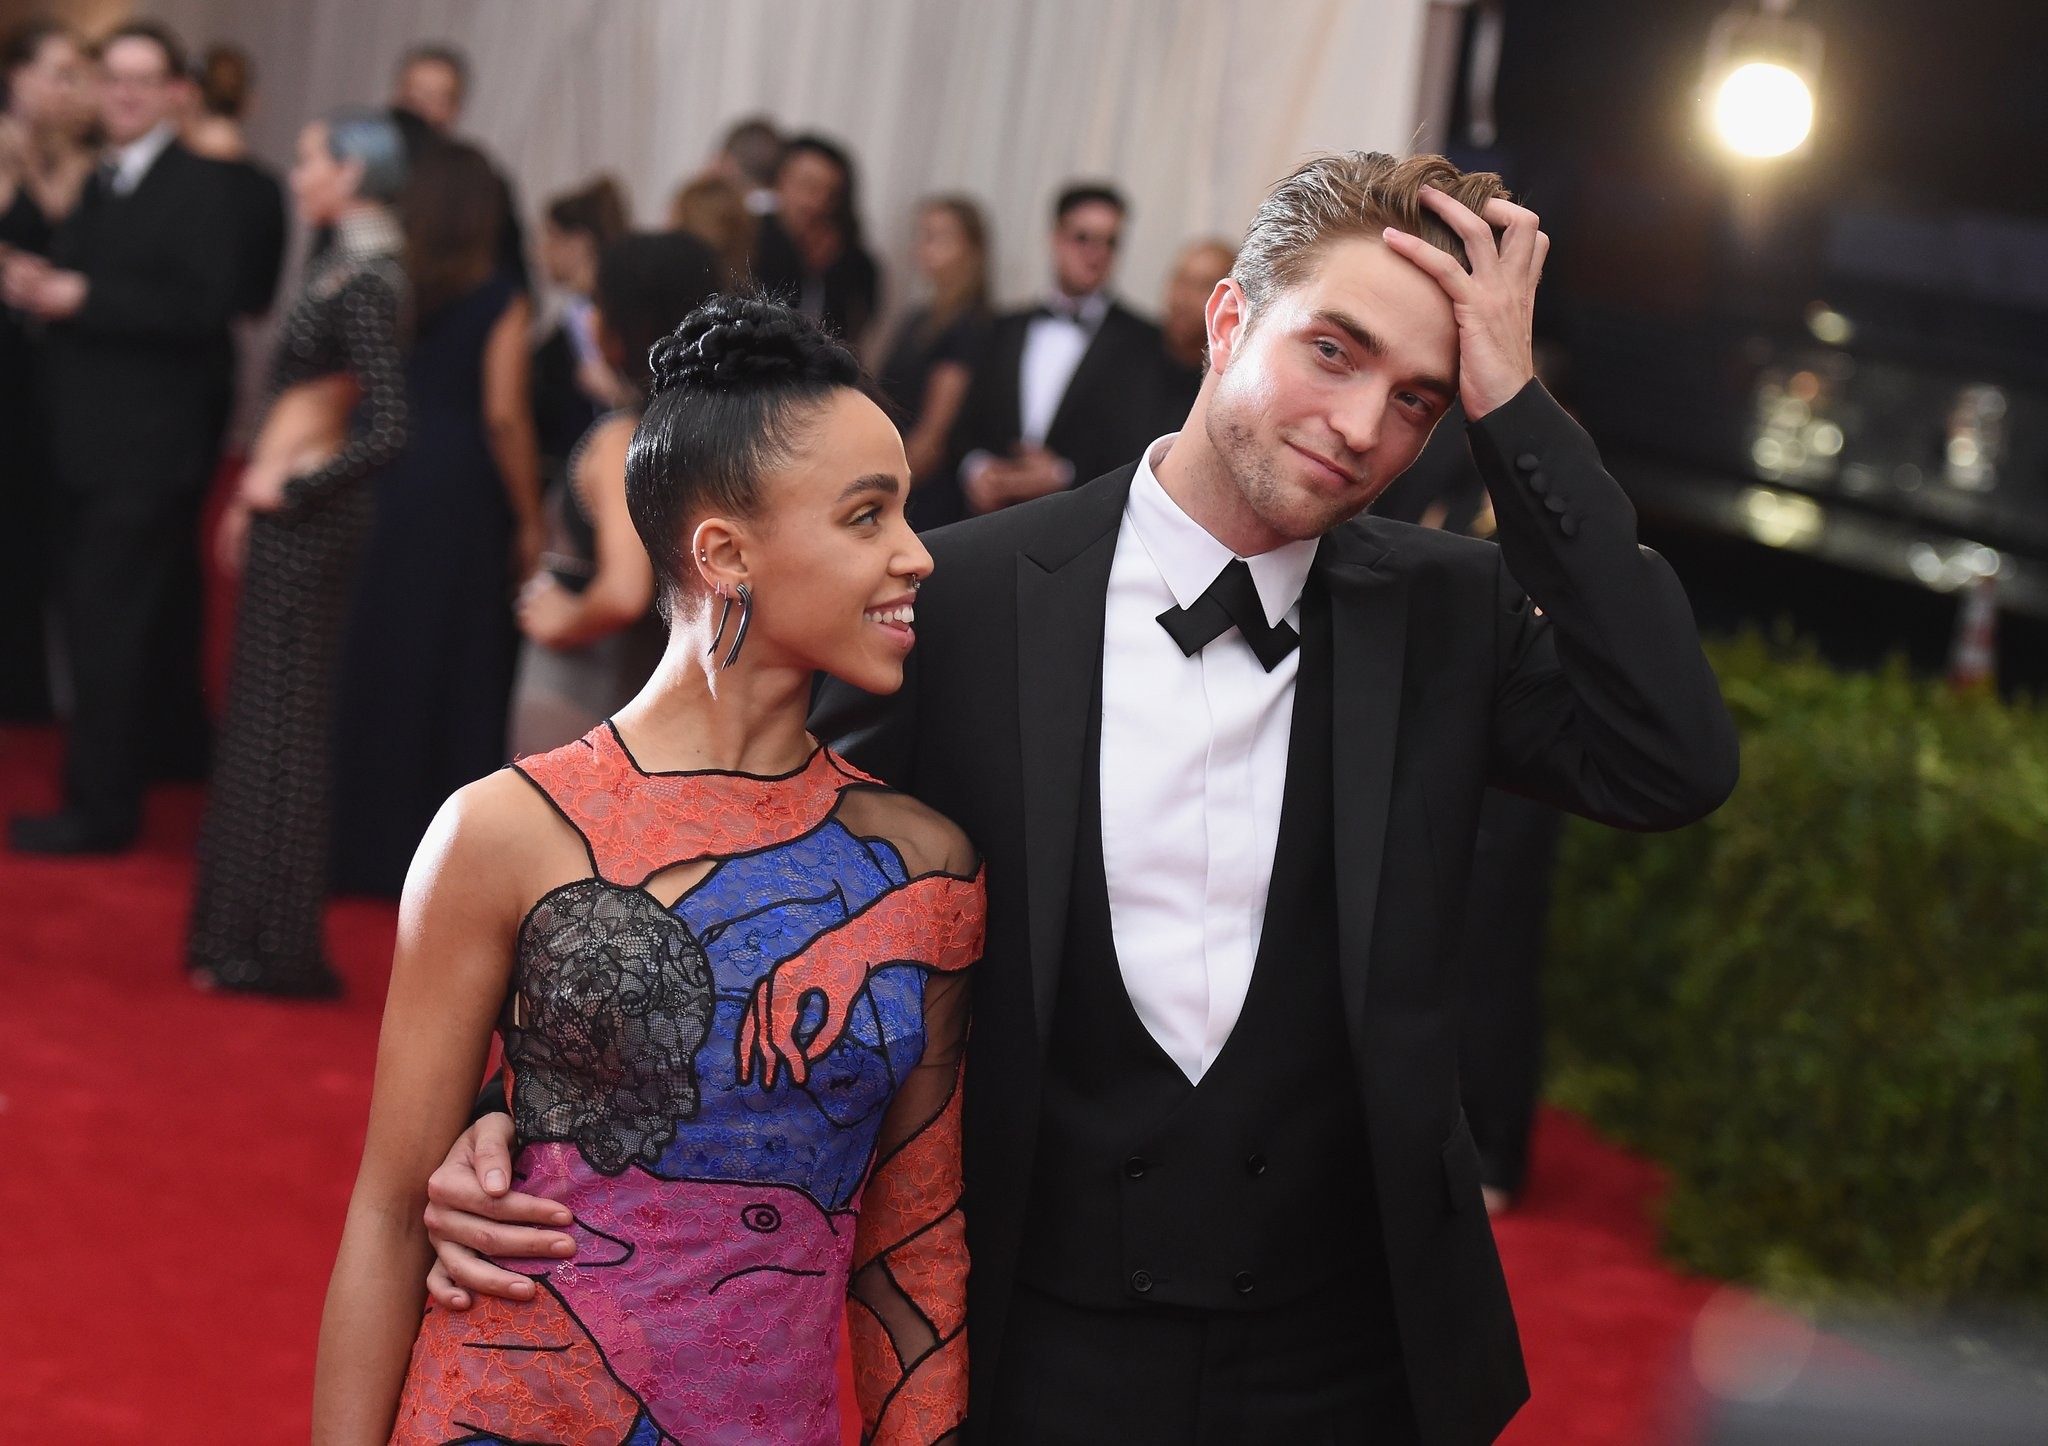 Photo of Robert Pattinson Putus Tunang Dengan FKA Twigs